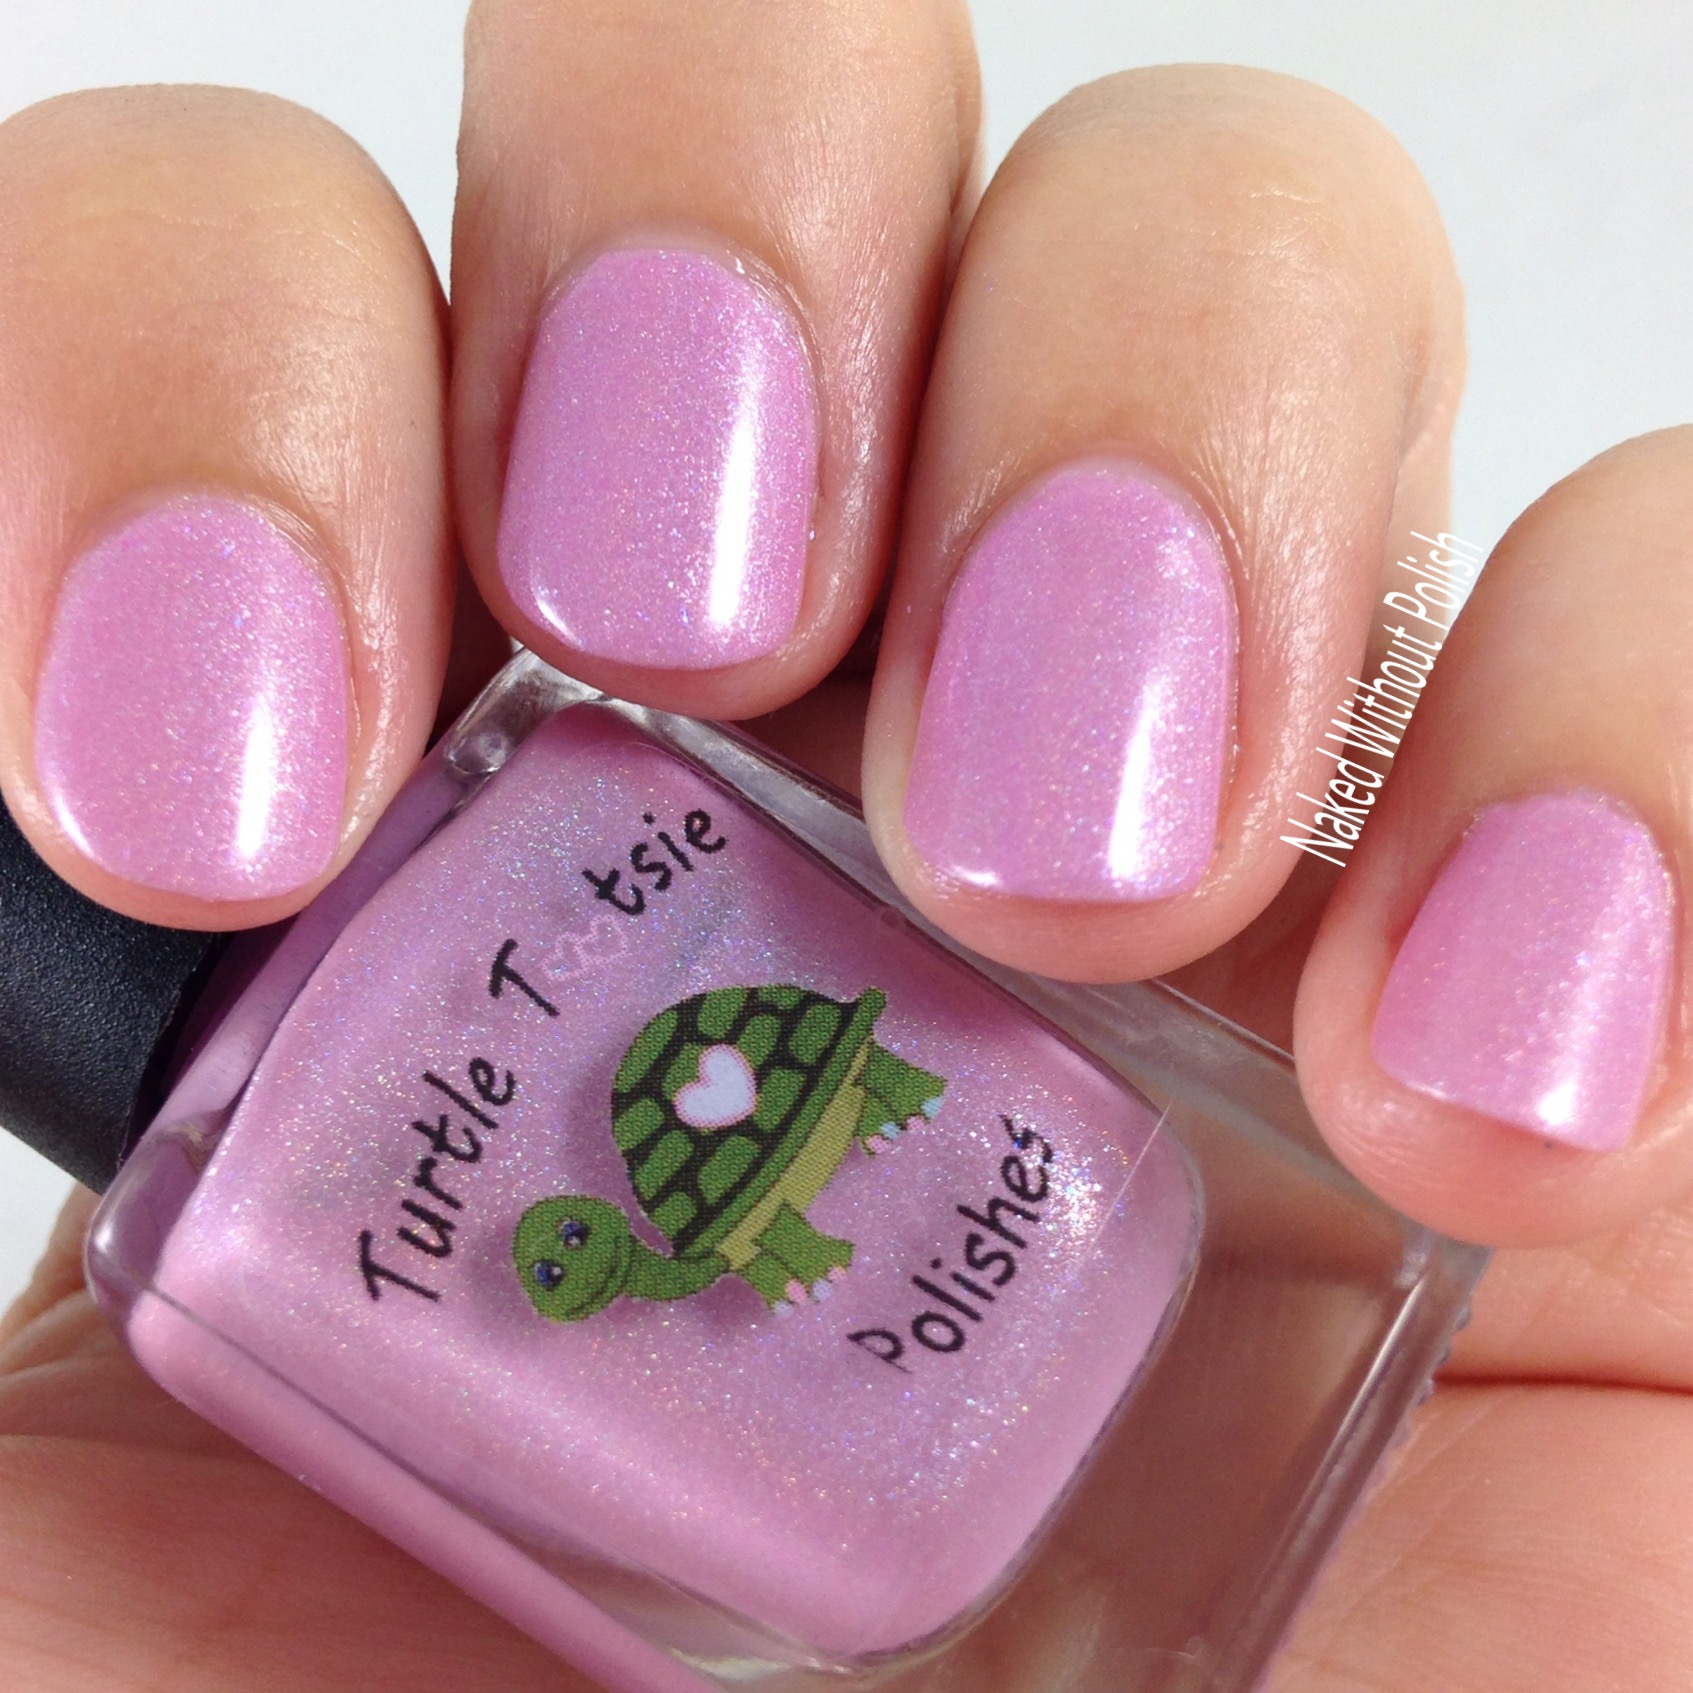 Turtle-Tootsie-Polishes-Pink-Ladies-6